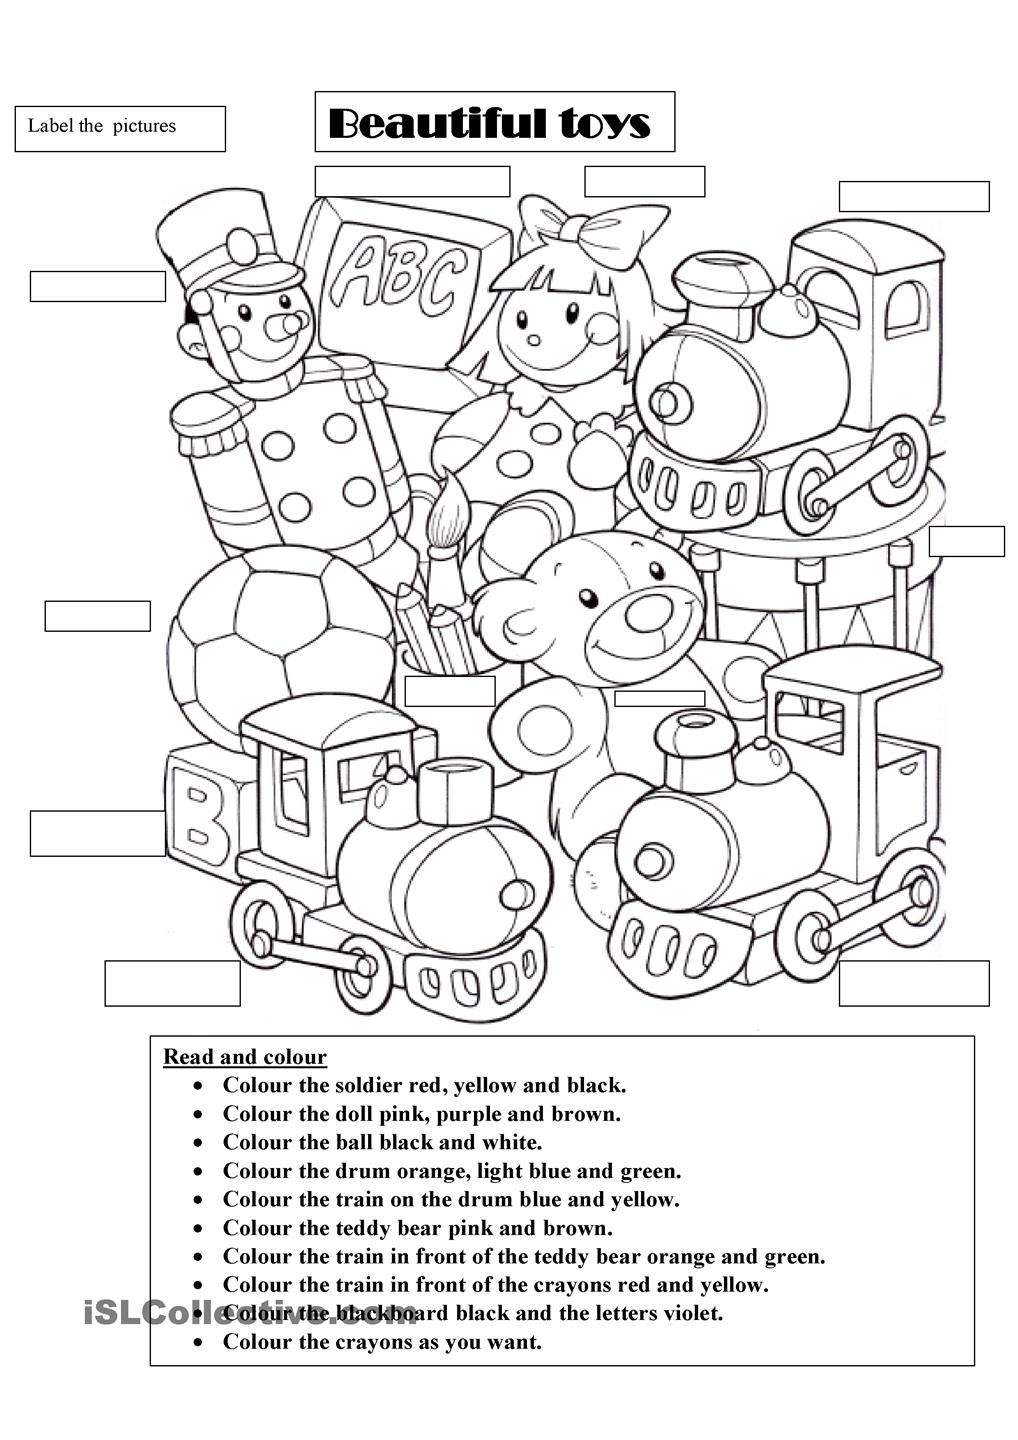 Beautiful toys | Beautiful toys, English worksheets for kids, Teaching toy